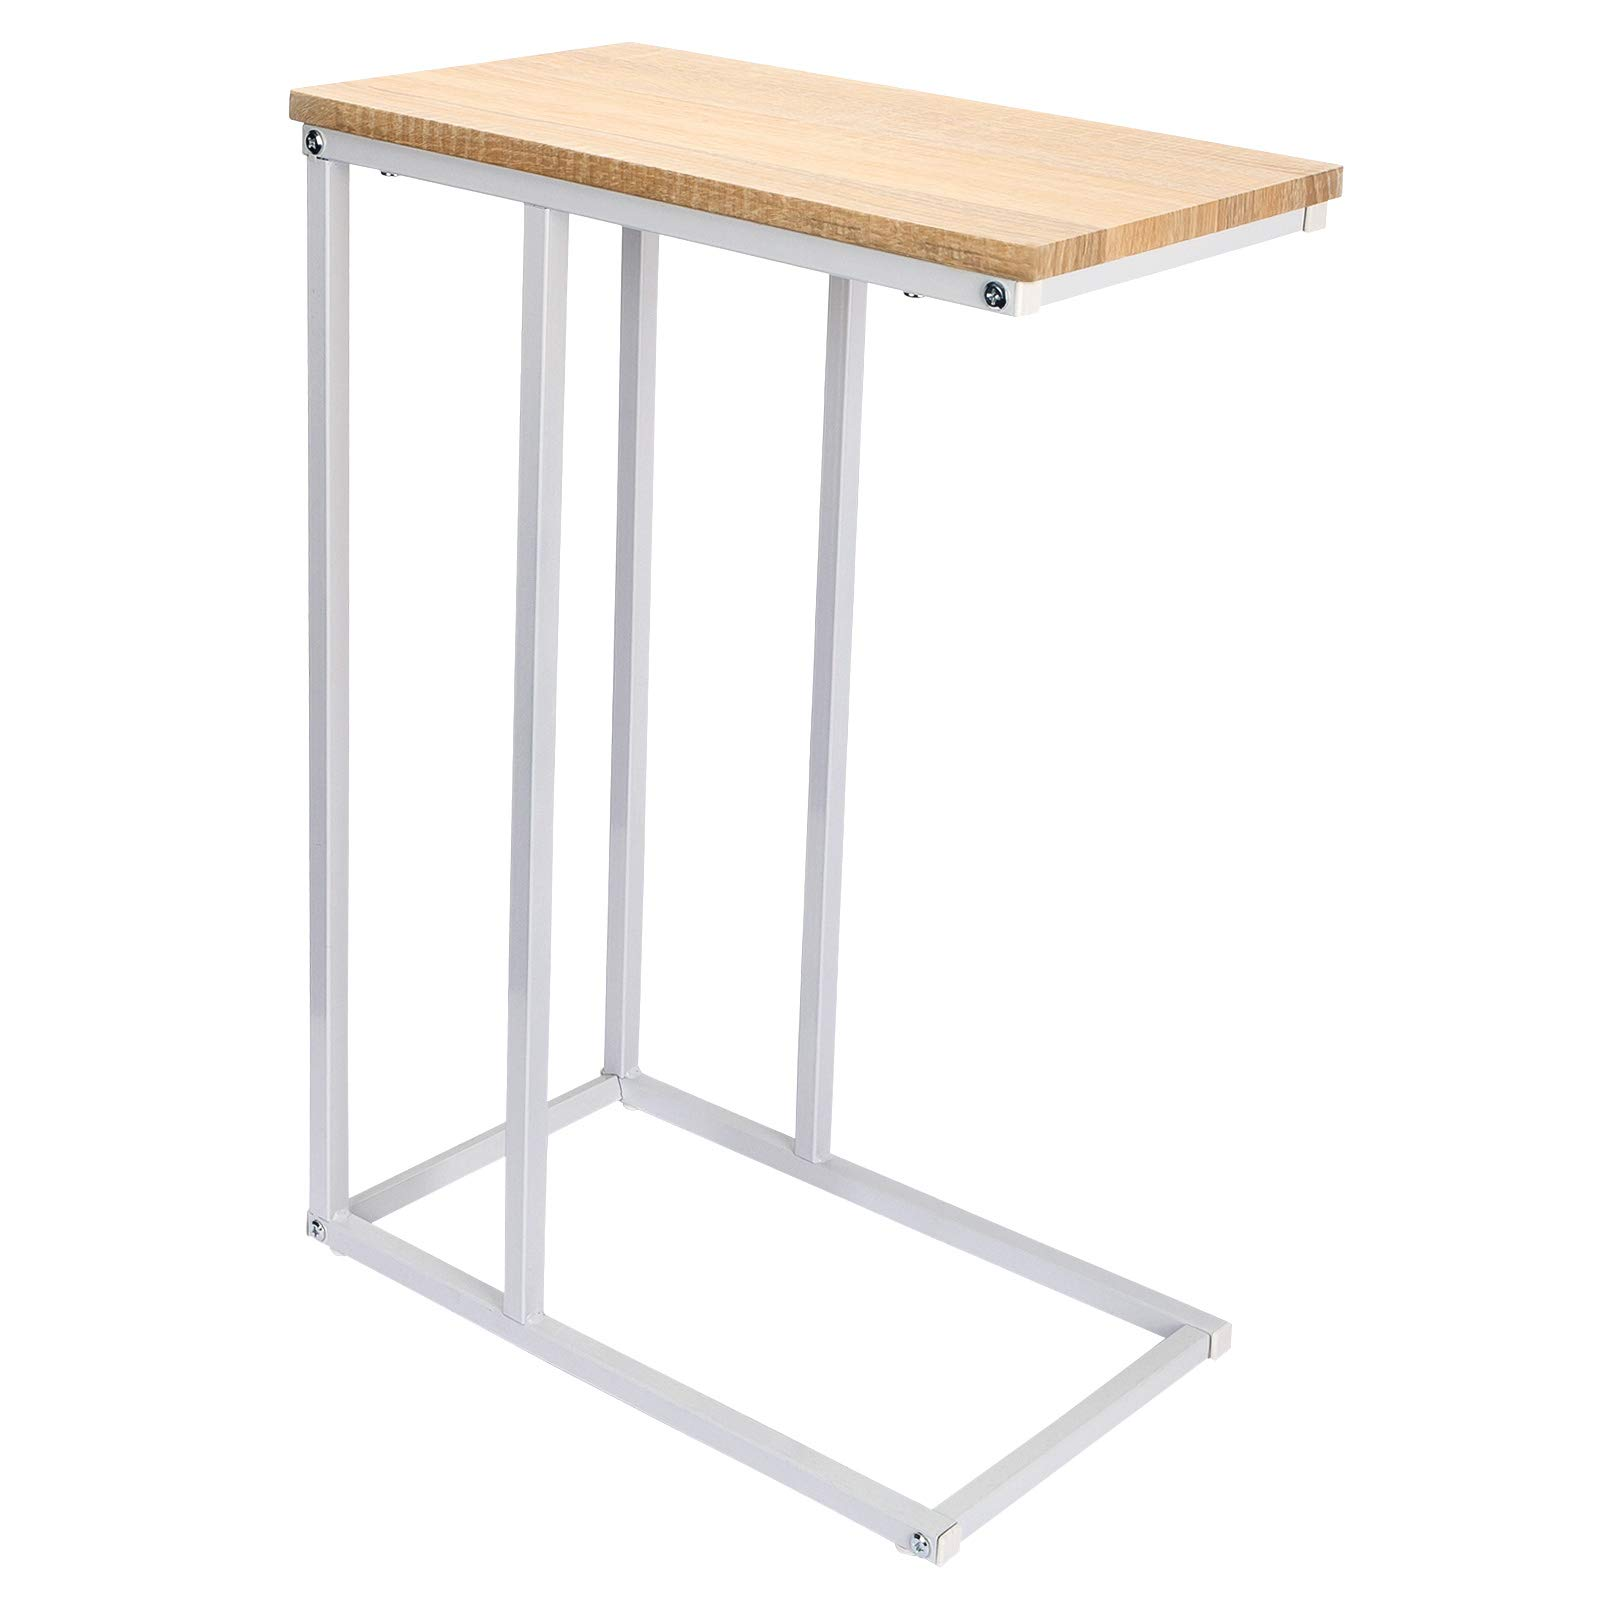 TS79hei WOLTU End Table Sofa Side Table with Storage C-shape Coffee Table Nightstand Laptop Table MDF Table Top Light Oak 55x36x59.5cm Metal Frame